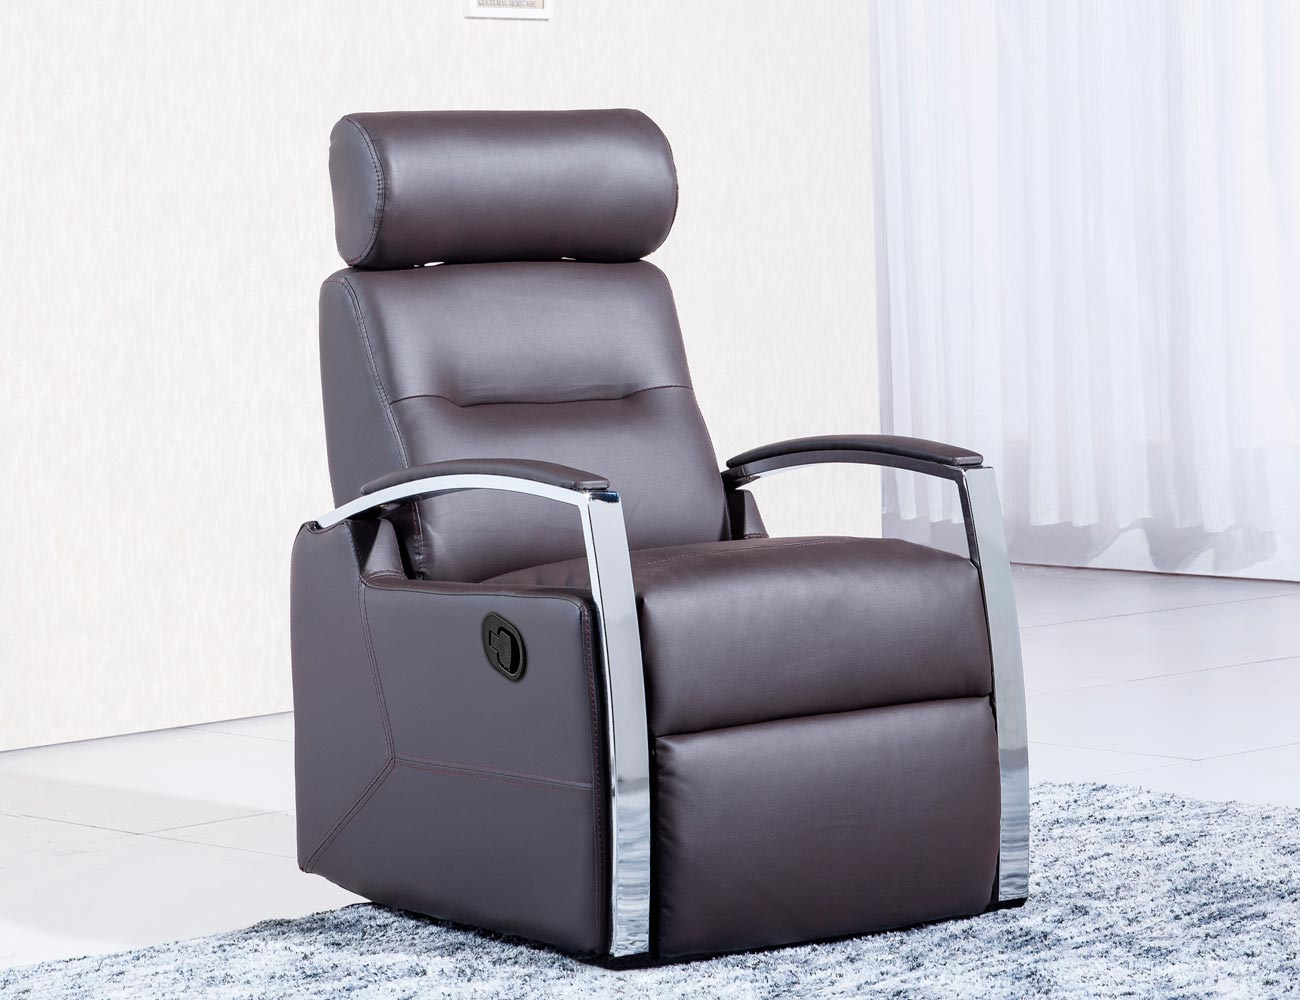 Sillon relax palanca simil piel chocolate1